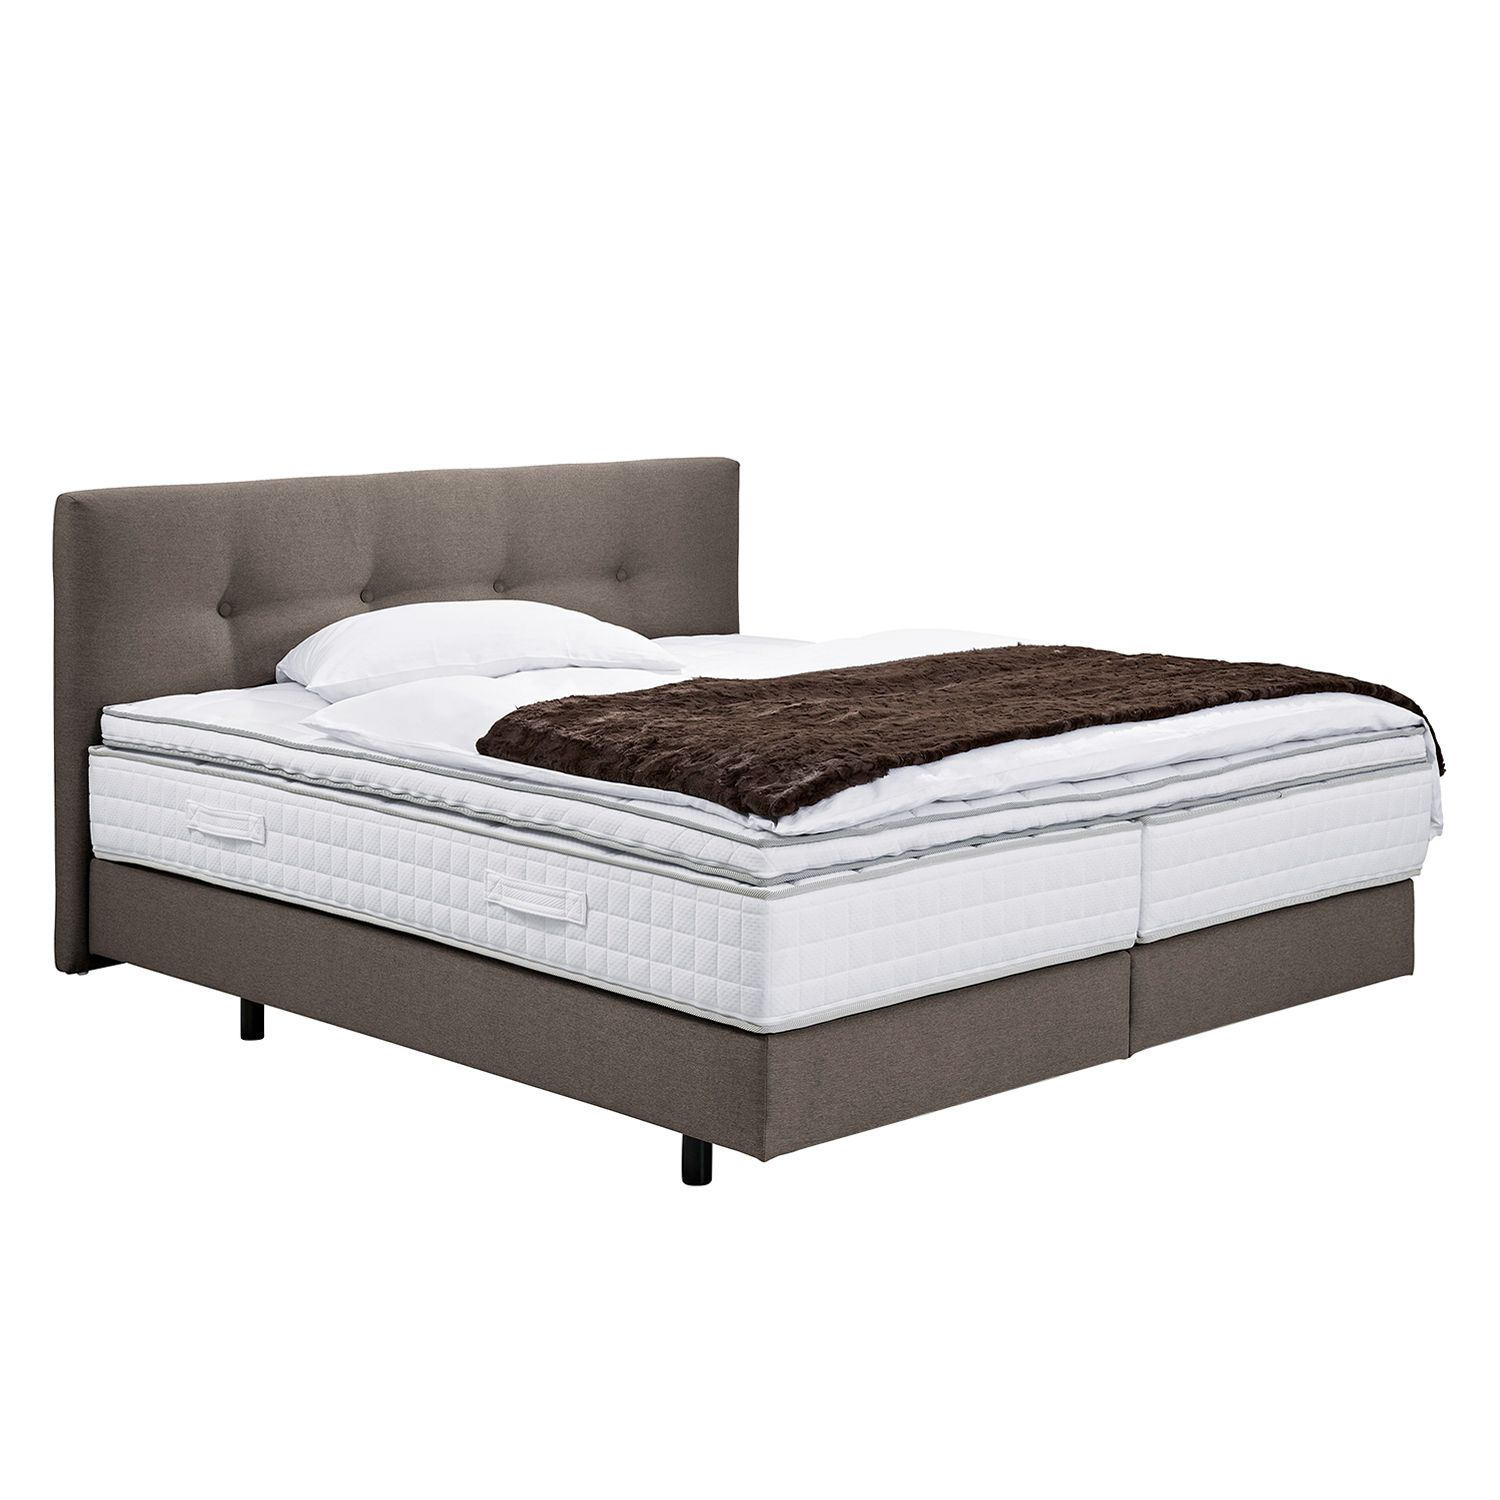 Matratze 180x80 Matratze 180 X 80 Affordable Matratze X Frisch Mattress Cm With